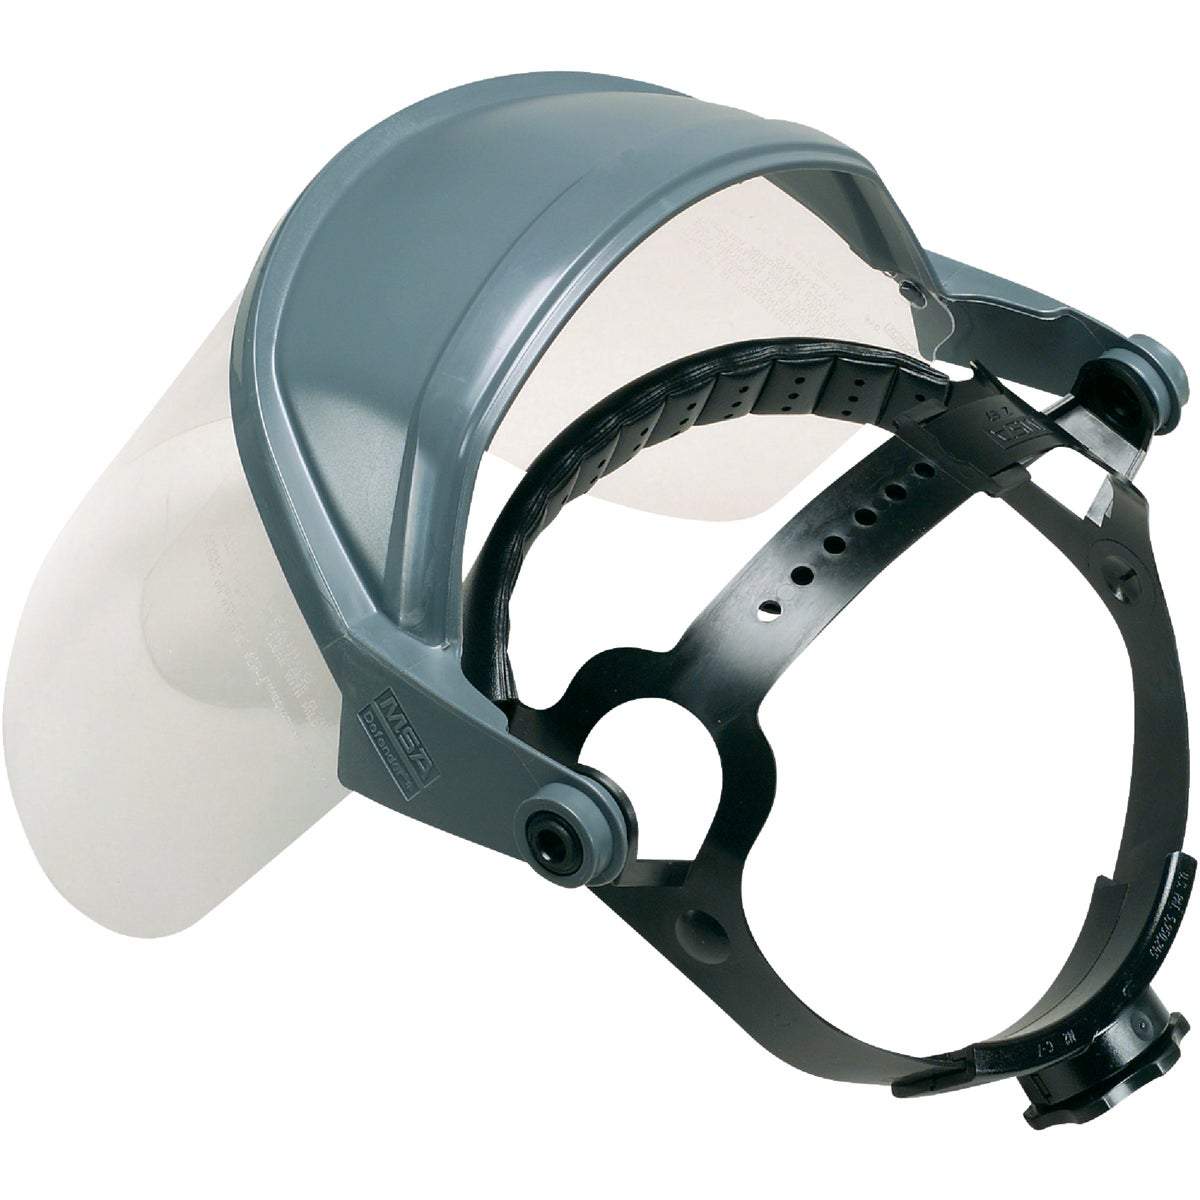 VISOR FACE SHIELD